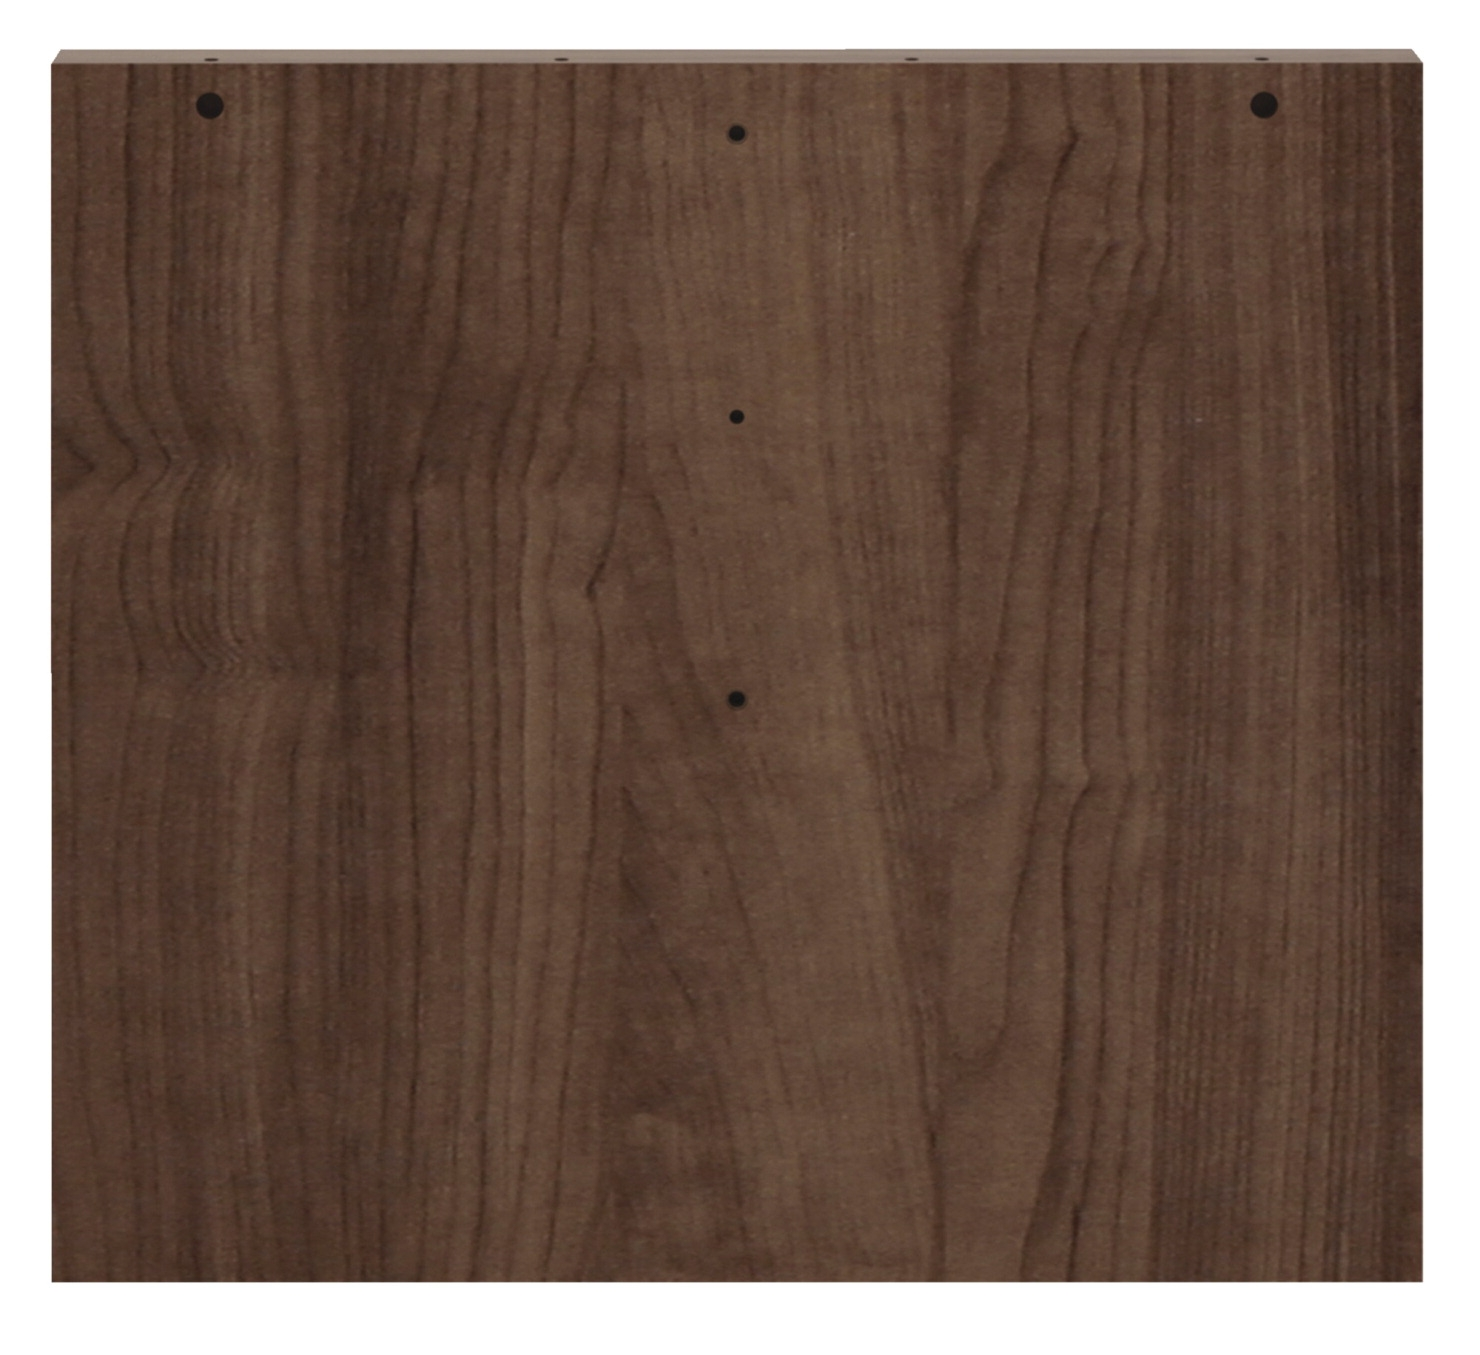 Lorell Prominence Conference Straight Base; 27-1/2 X 30 X 27-1/2 Inches; Walnut - 1575076 - Games Game Tables Pool Tables 1575076